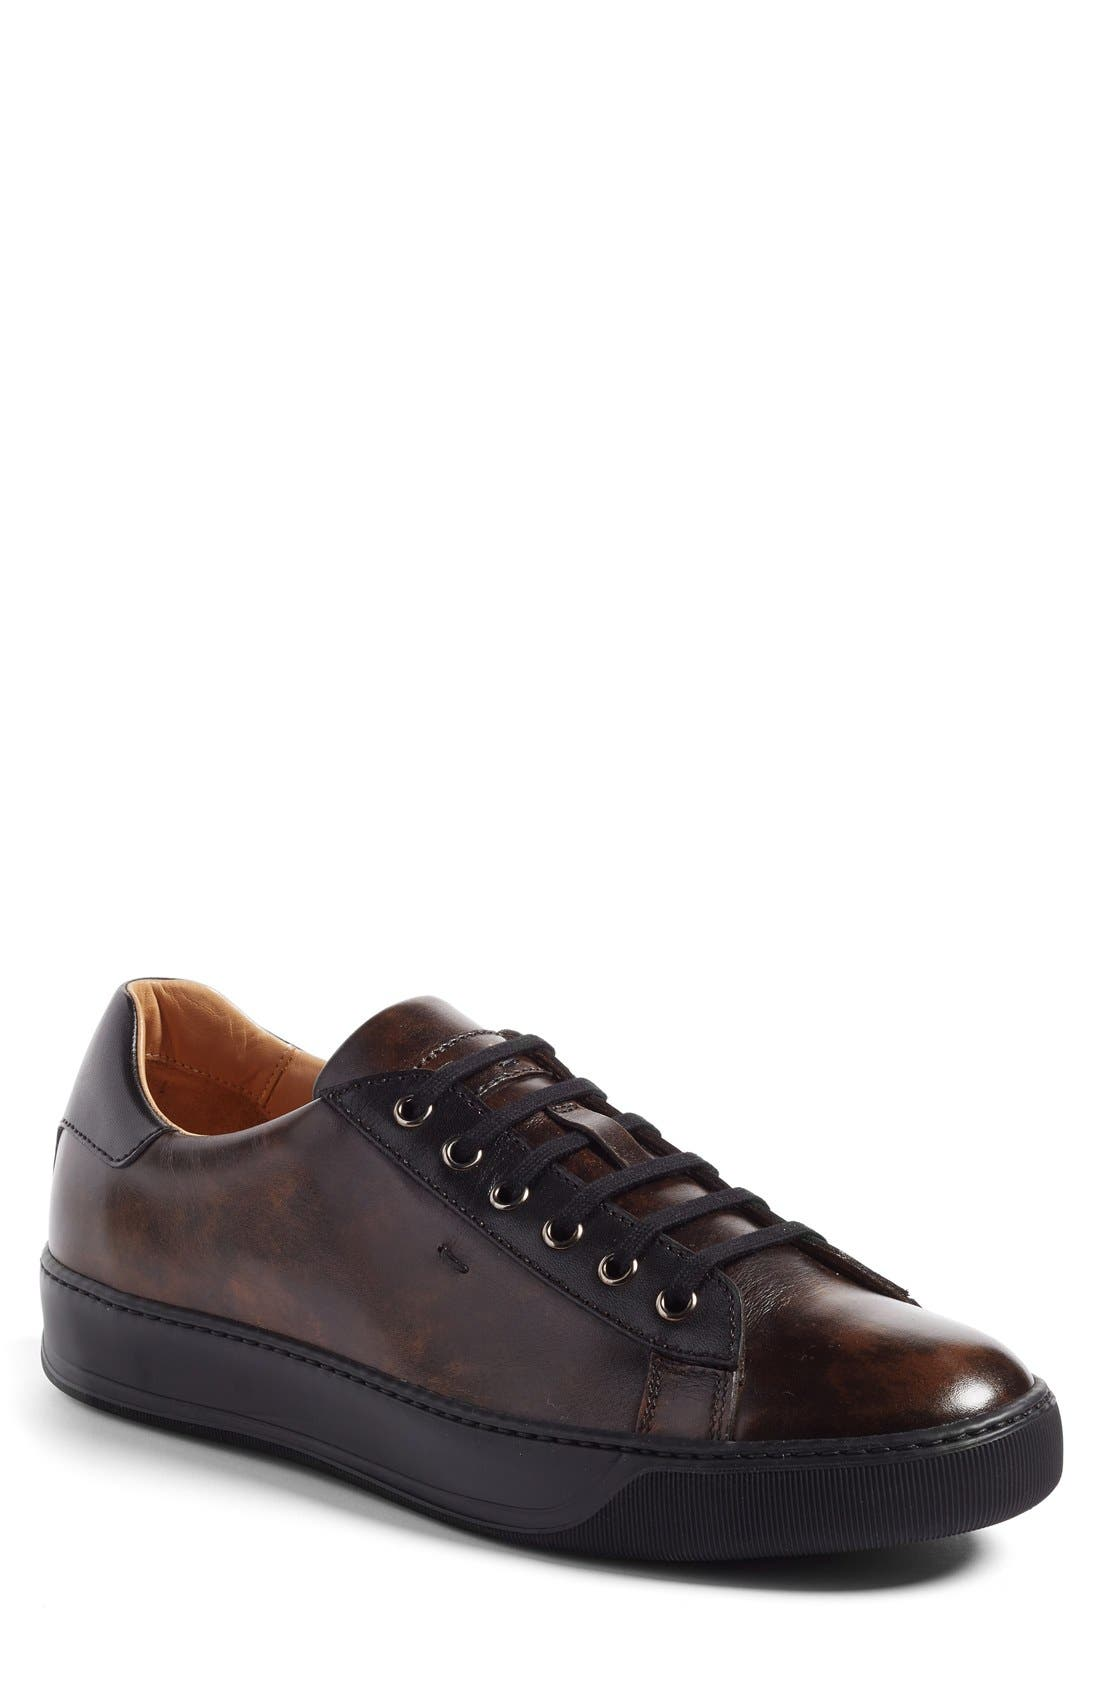 'Apache' Lace-Up Sneaker,                         Main,                         color, Dark Brown Leather